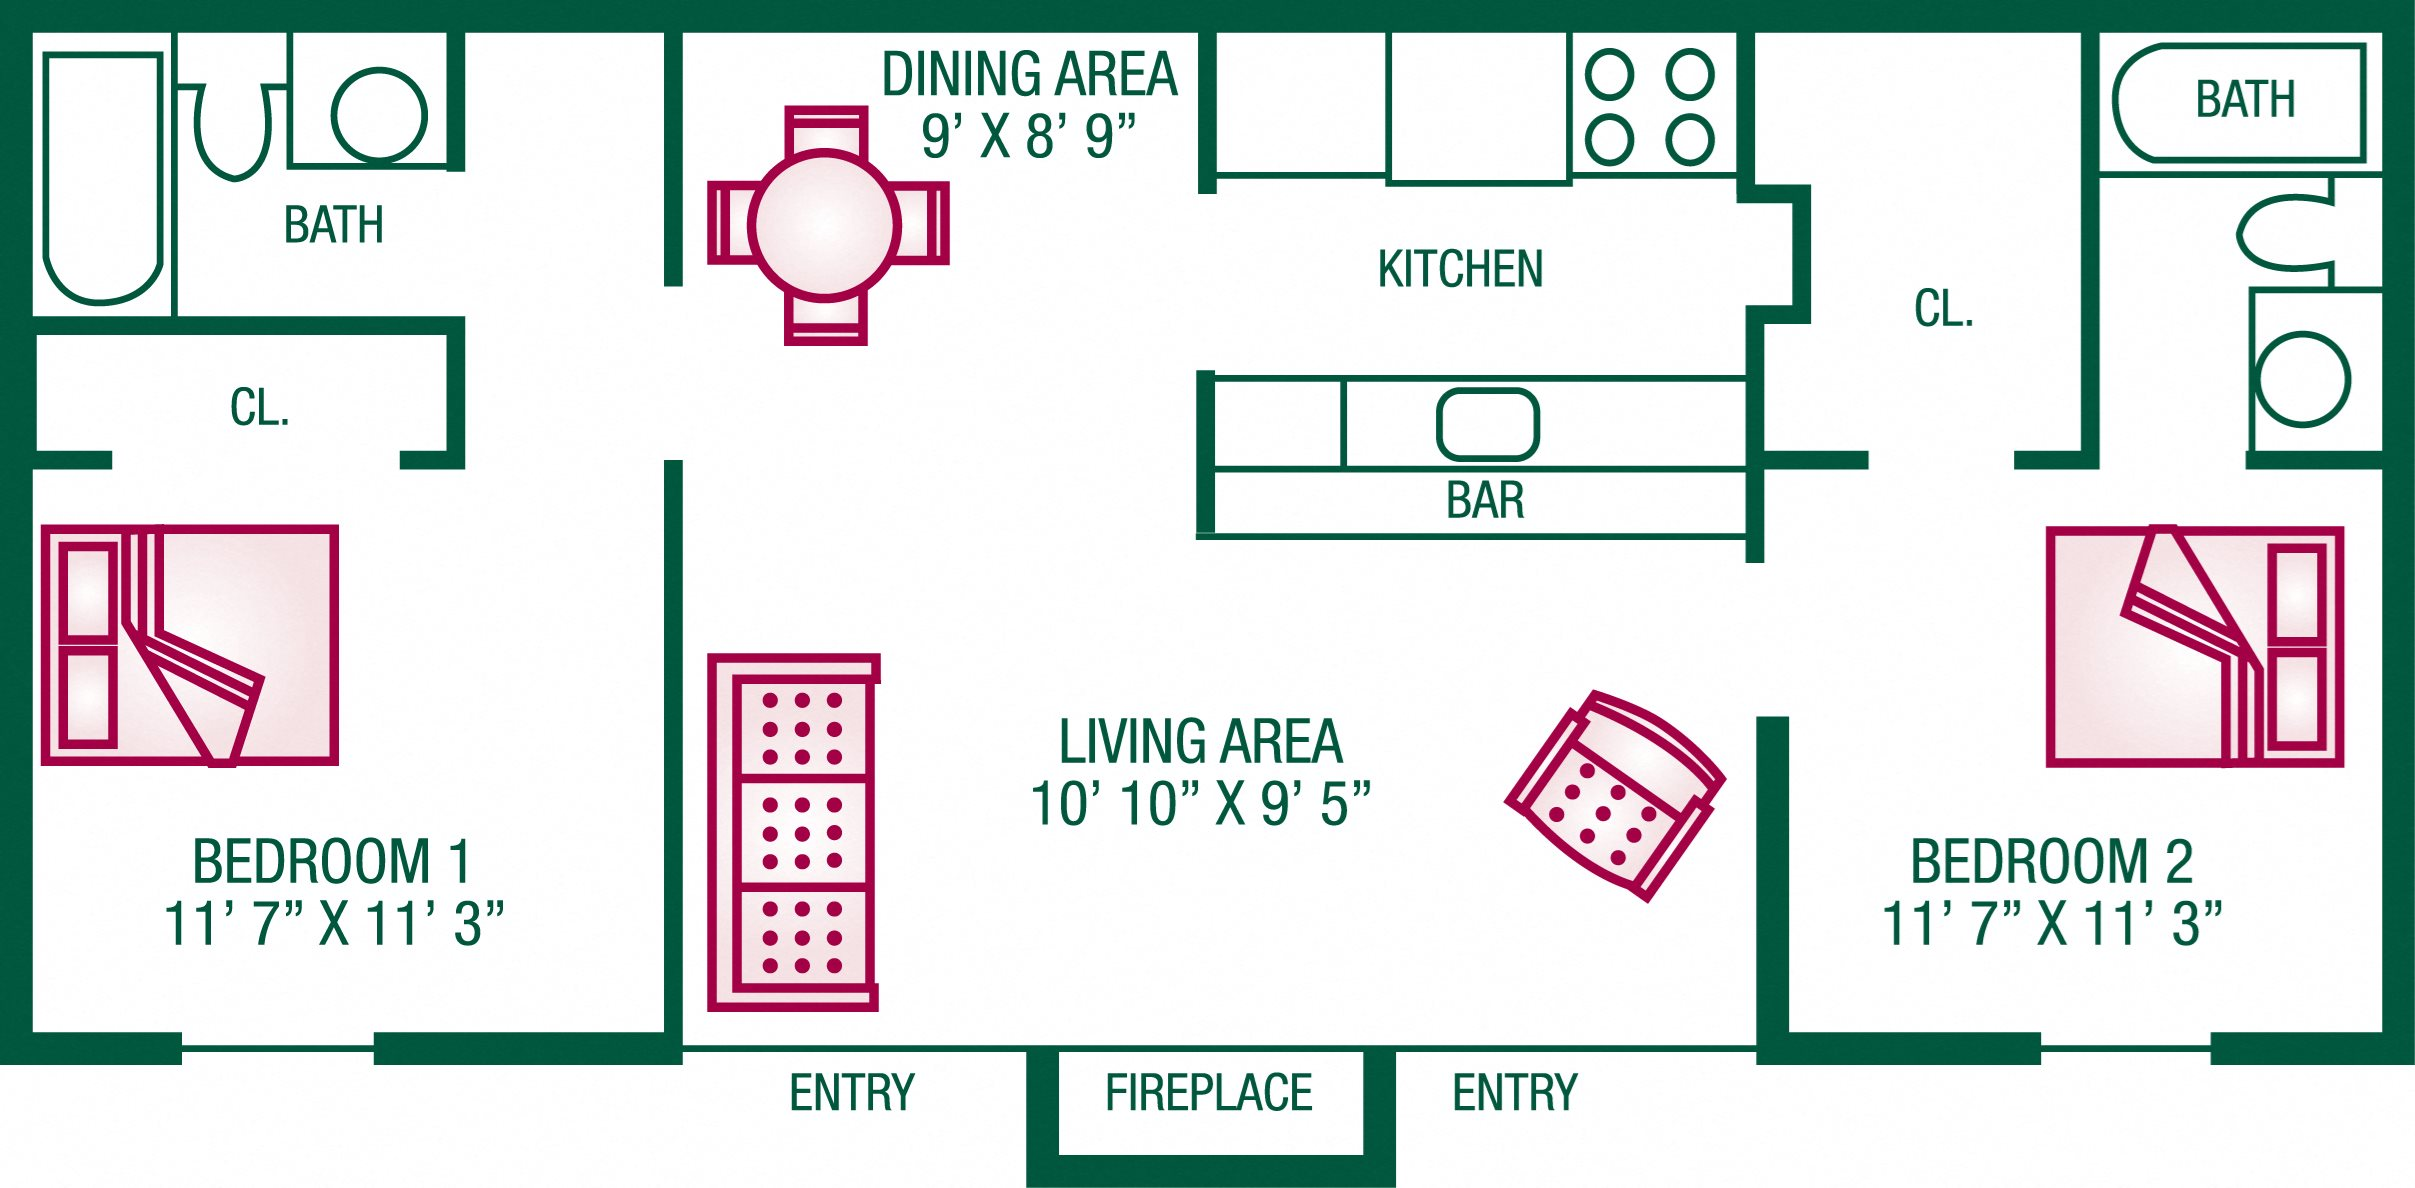 2 Bedroom / 2 Bath (with Fireplace) - Plan A Floor Plan 5